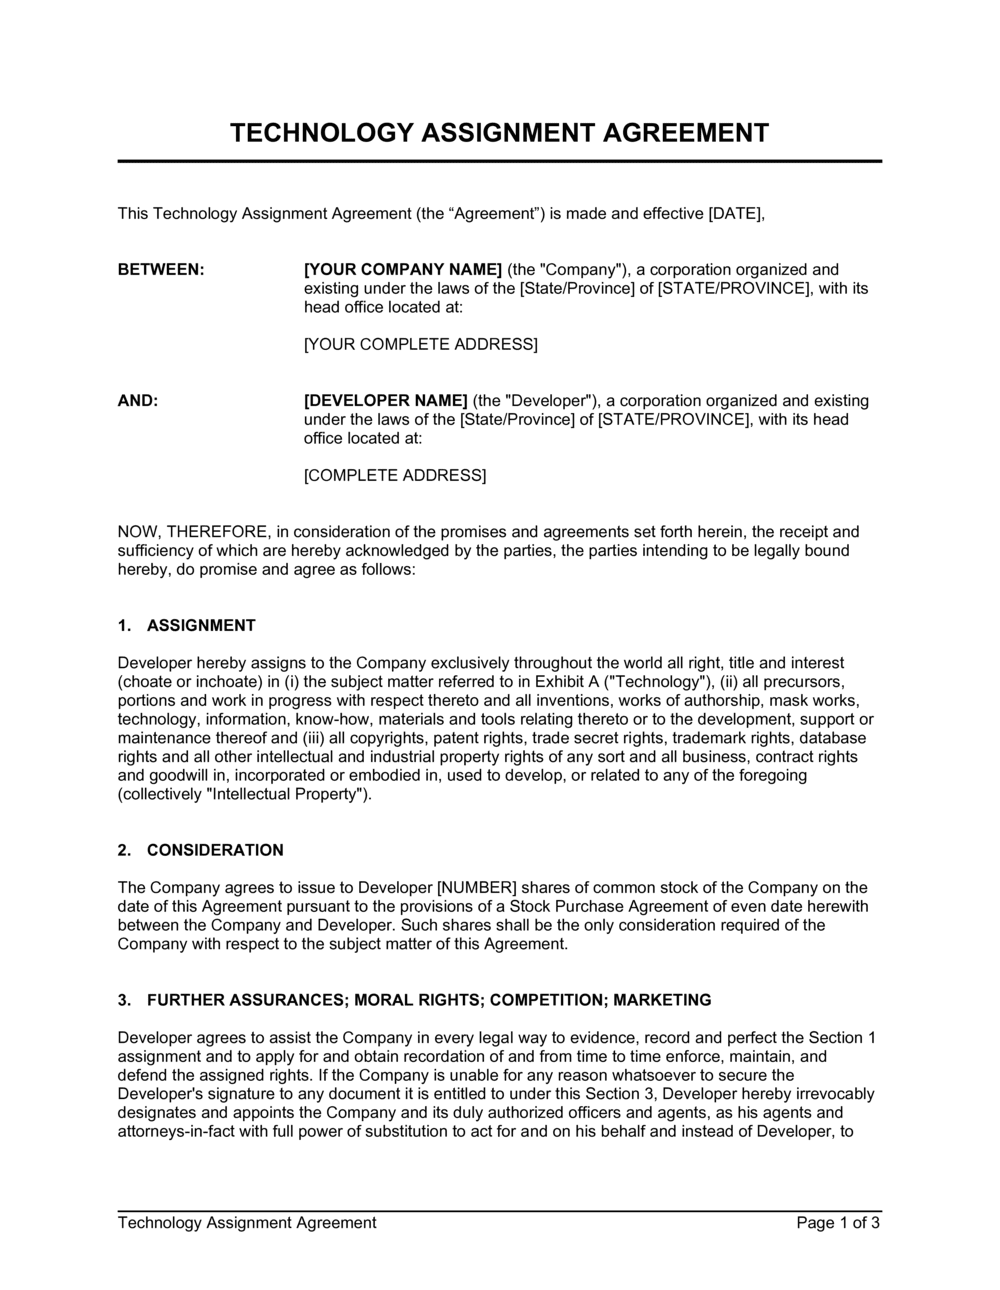 Business-in-a-Box's Technology Assignment Agreement Template